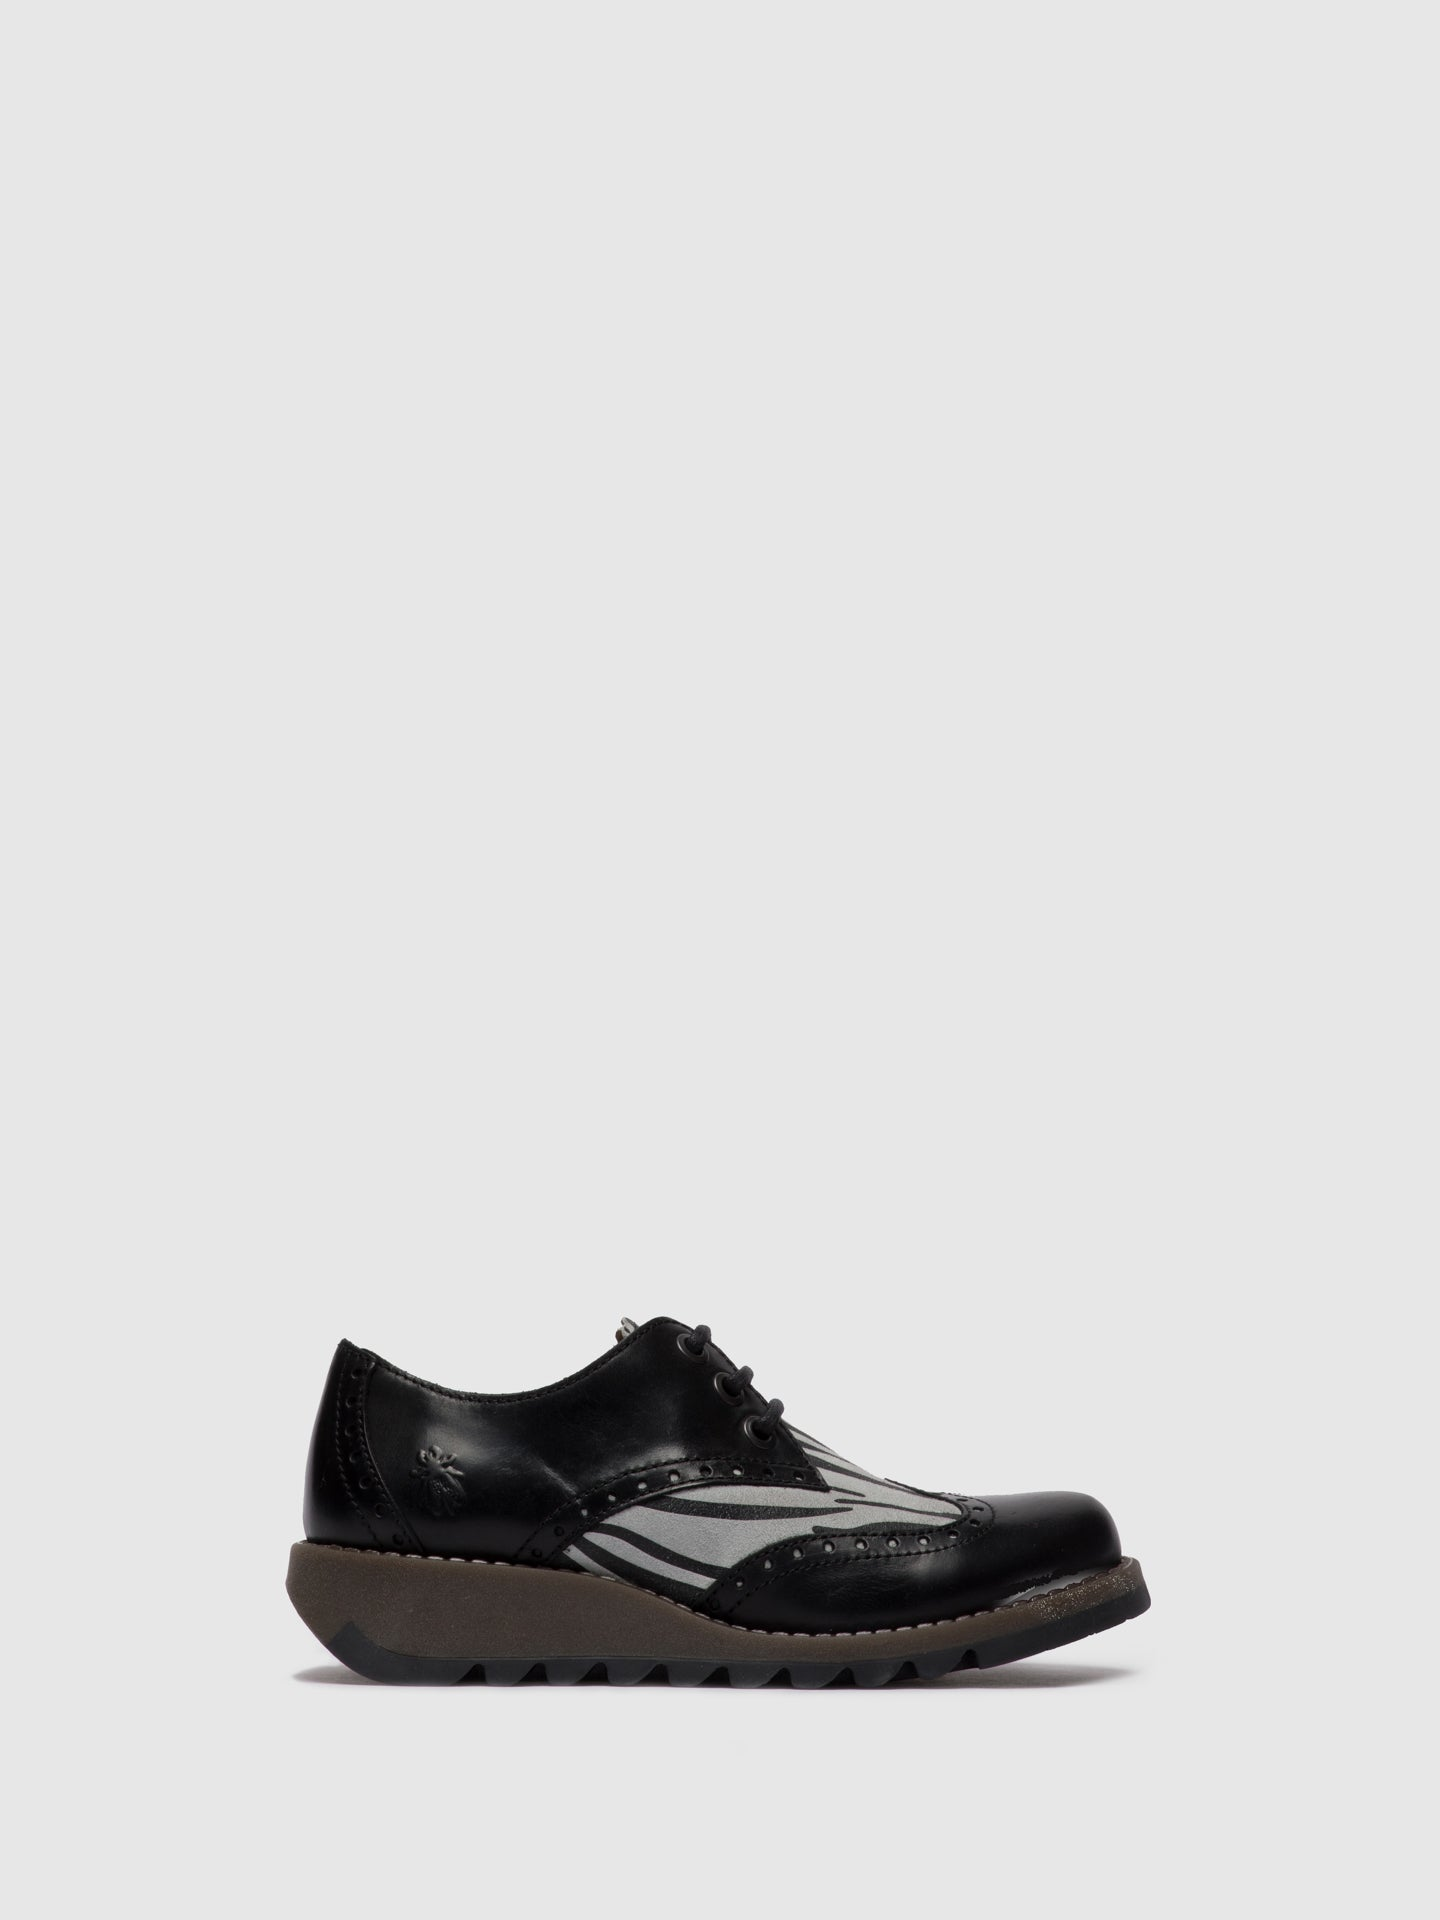 Fly London Oxford Shoes SUME524FLY RUG/ZEBRA BLACK/OFFWHITE